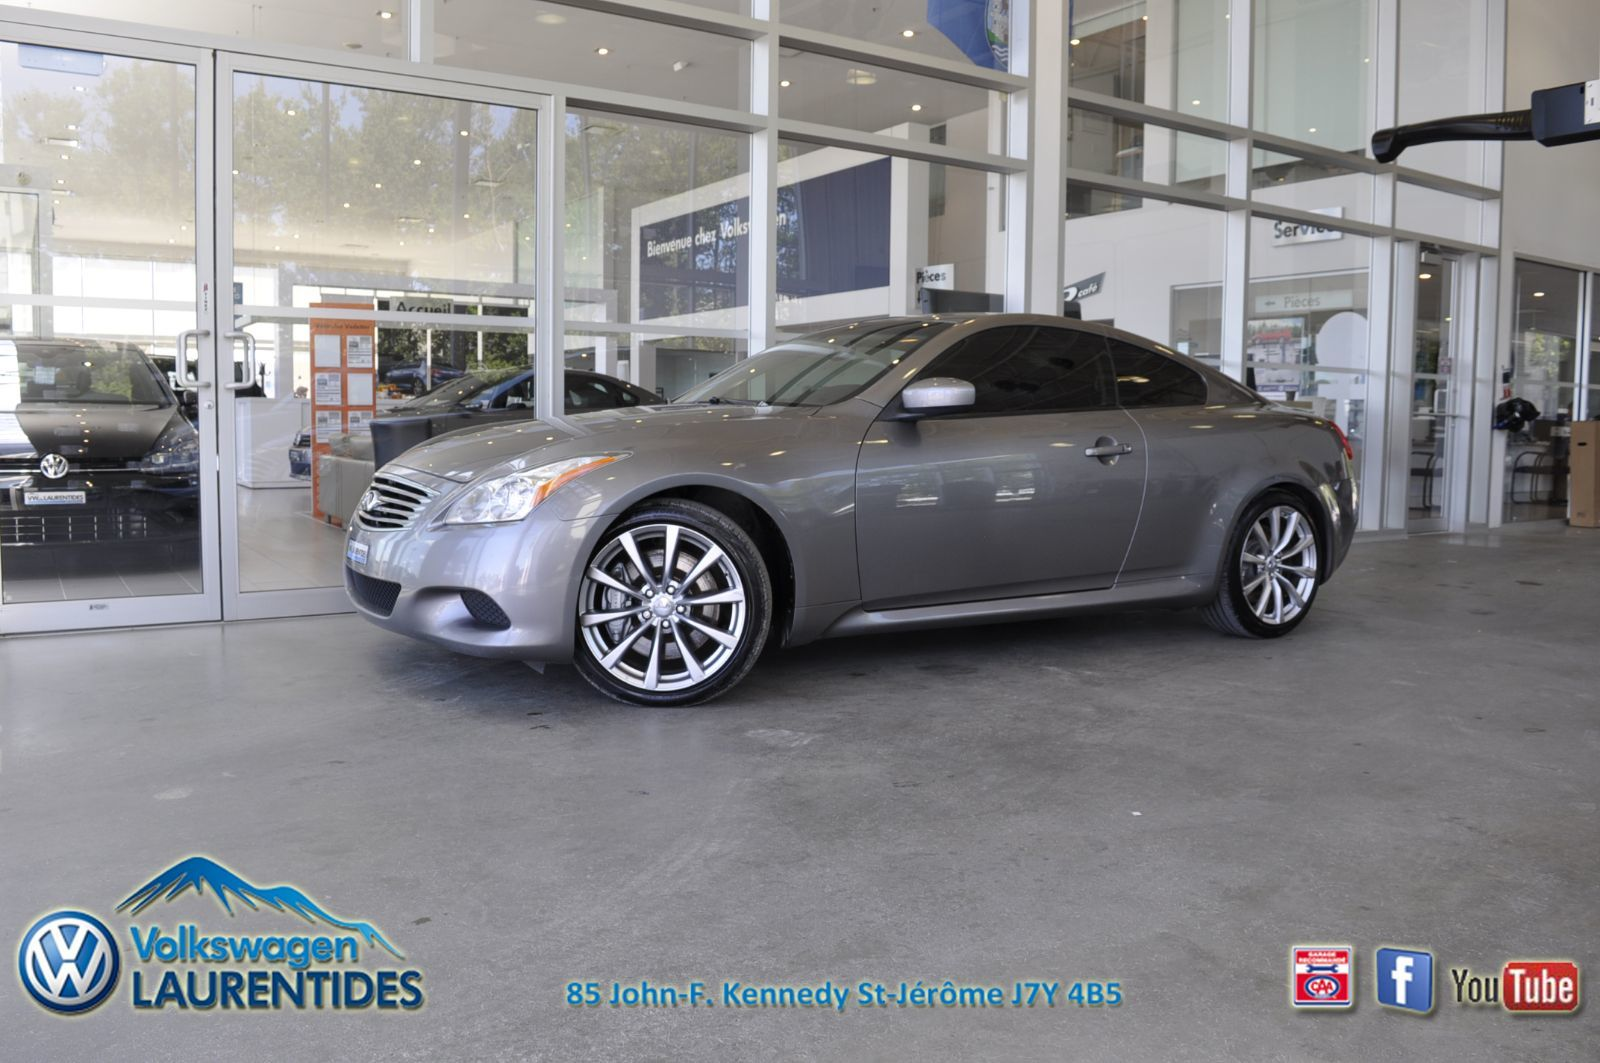 Used 2008 Infiniti G37 Coupe S Grey 182 471 Km For Sale 10495 0 Volkswagen Laurentides 18 634b